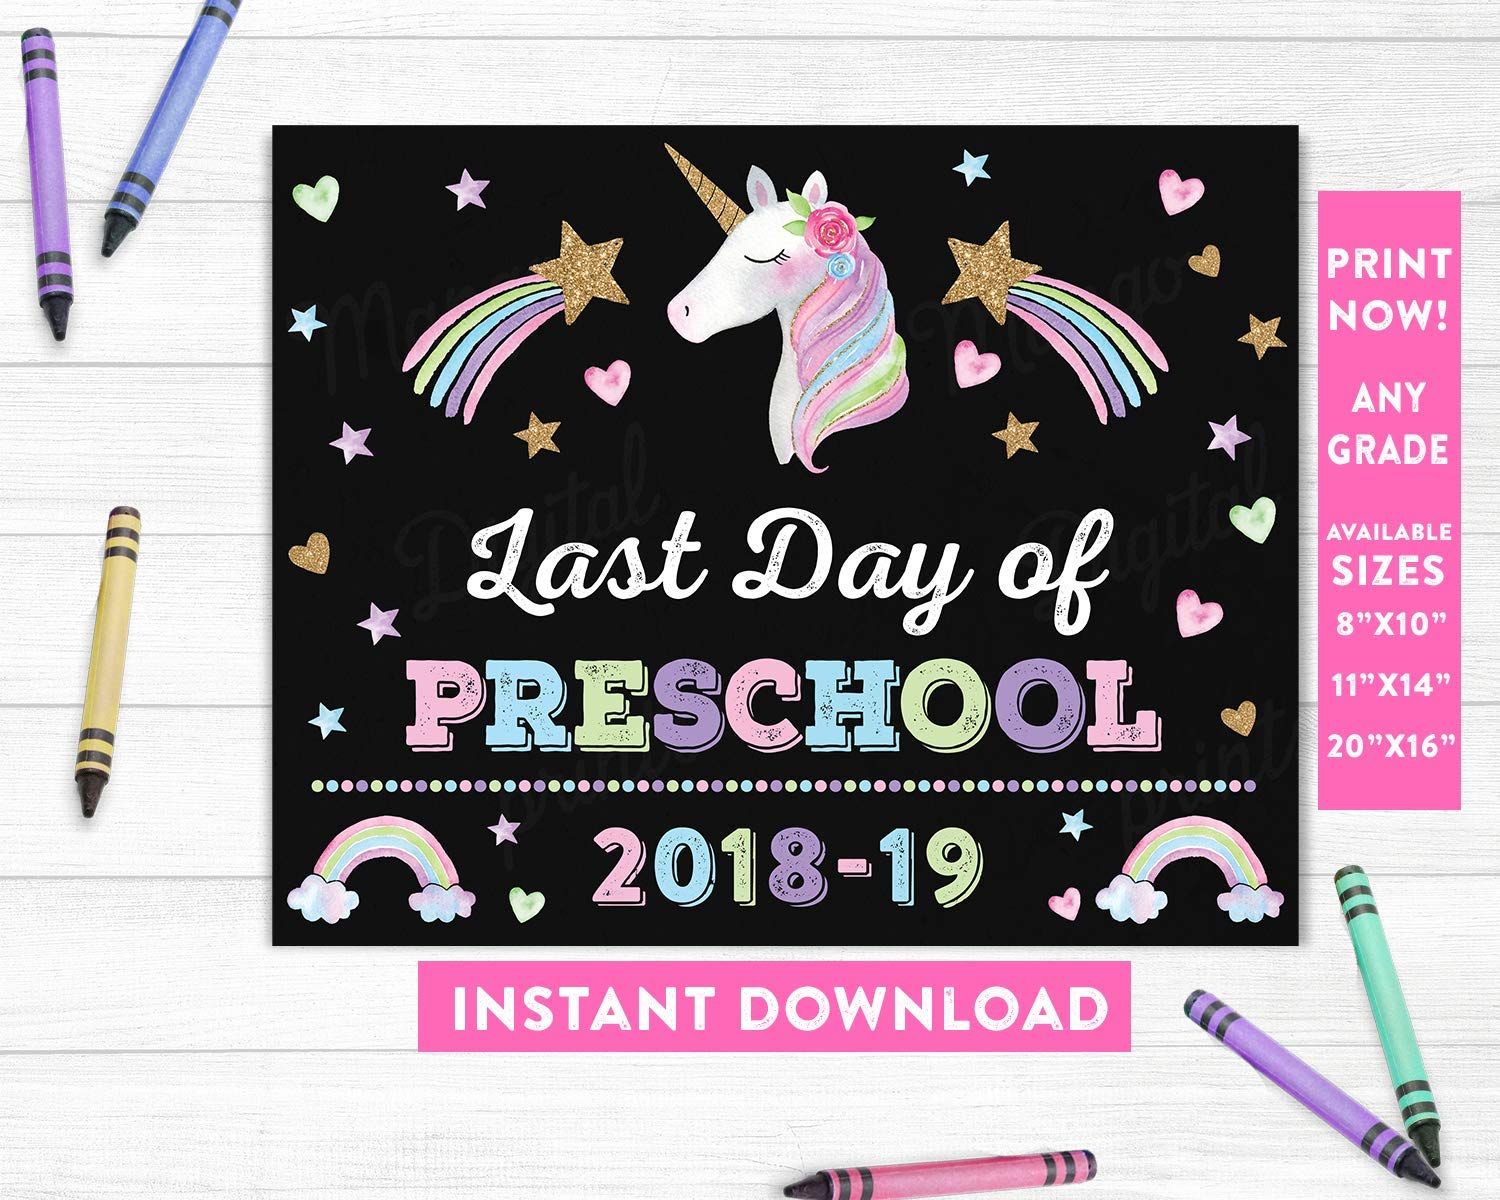 photo relating to Last Day of Preschool Sign Printable called : Previous Working day of Preschool Indication, Unicorn Very last Working day of